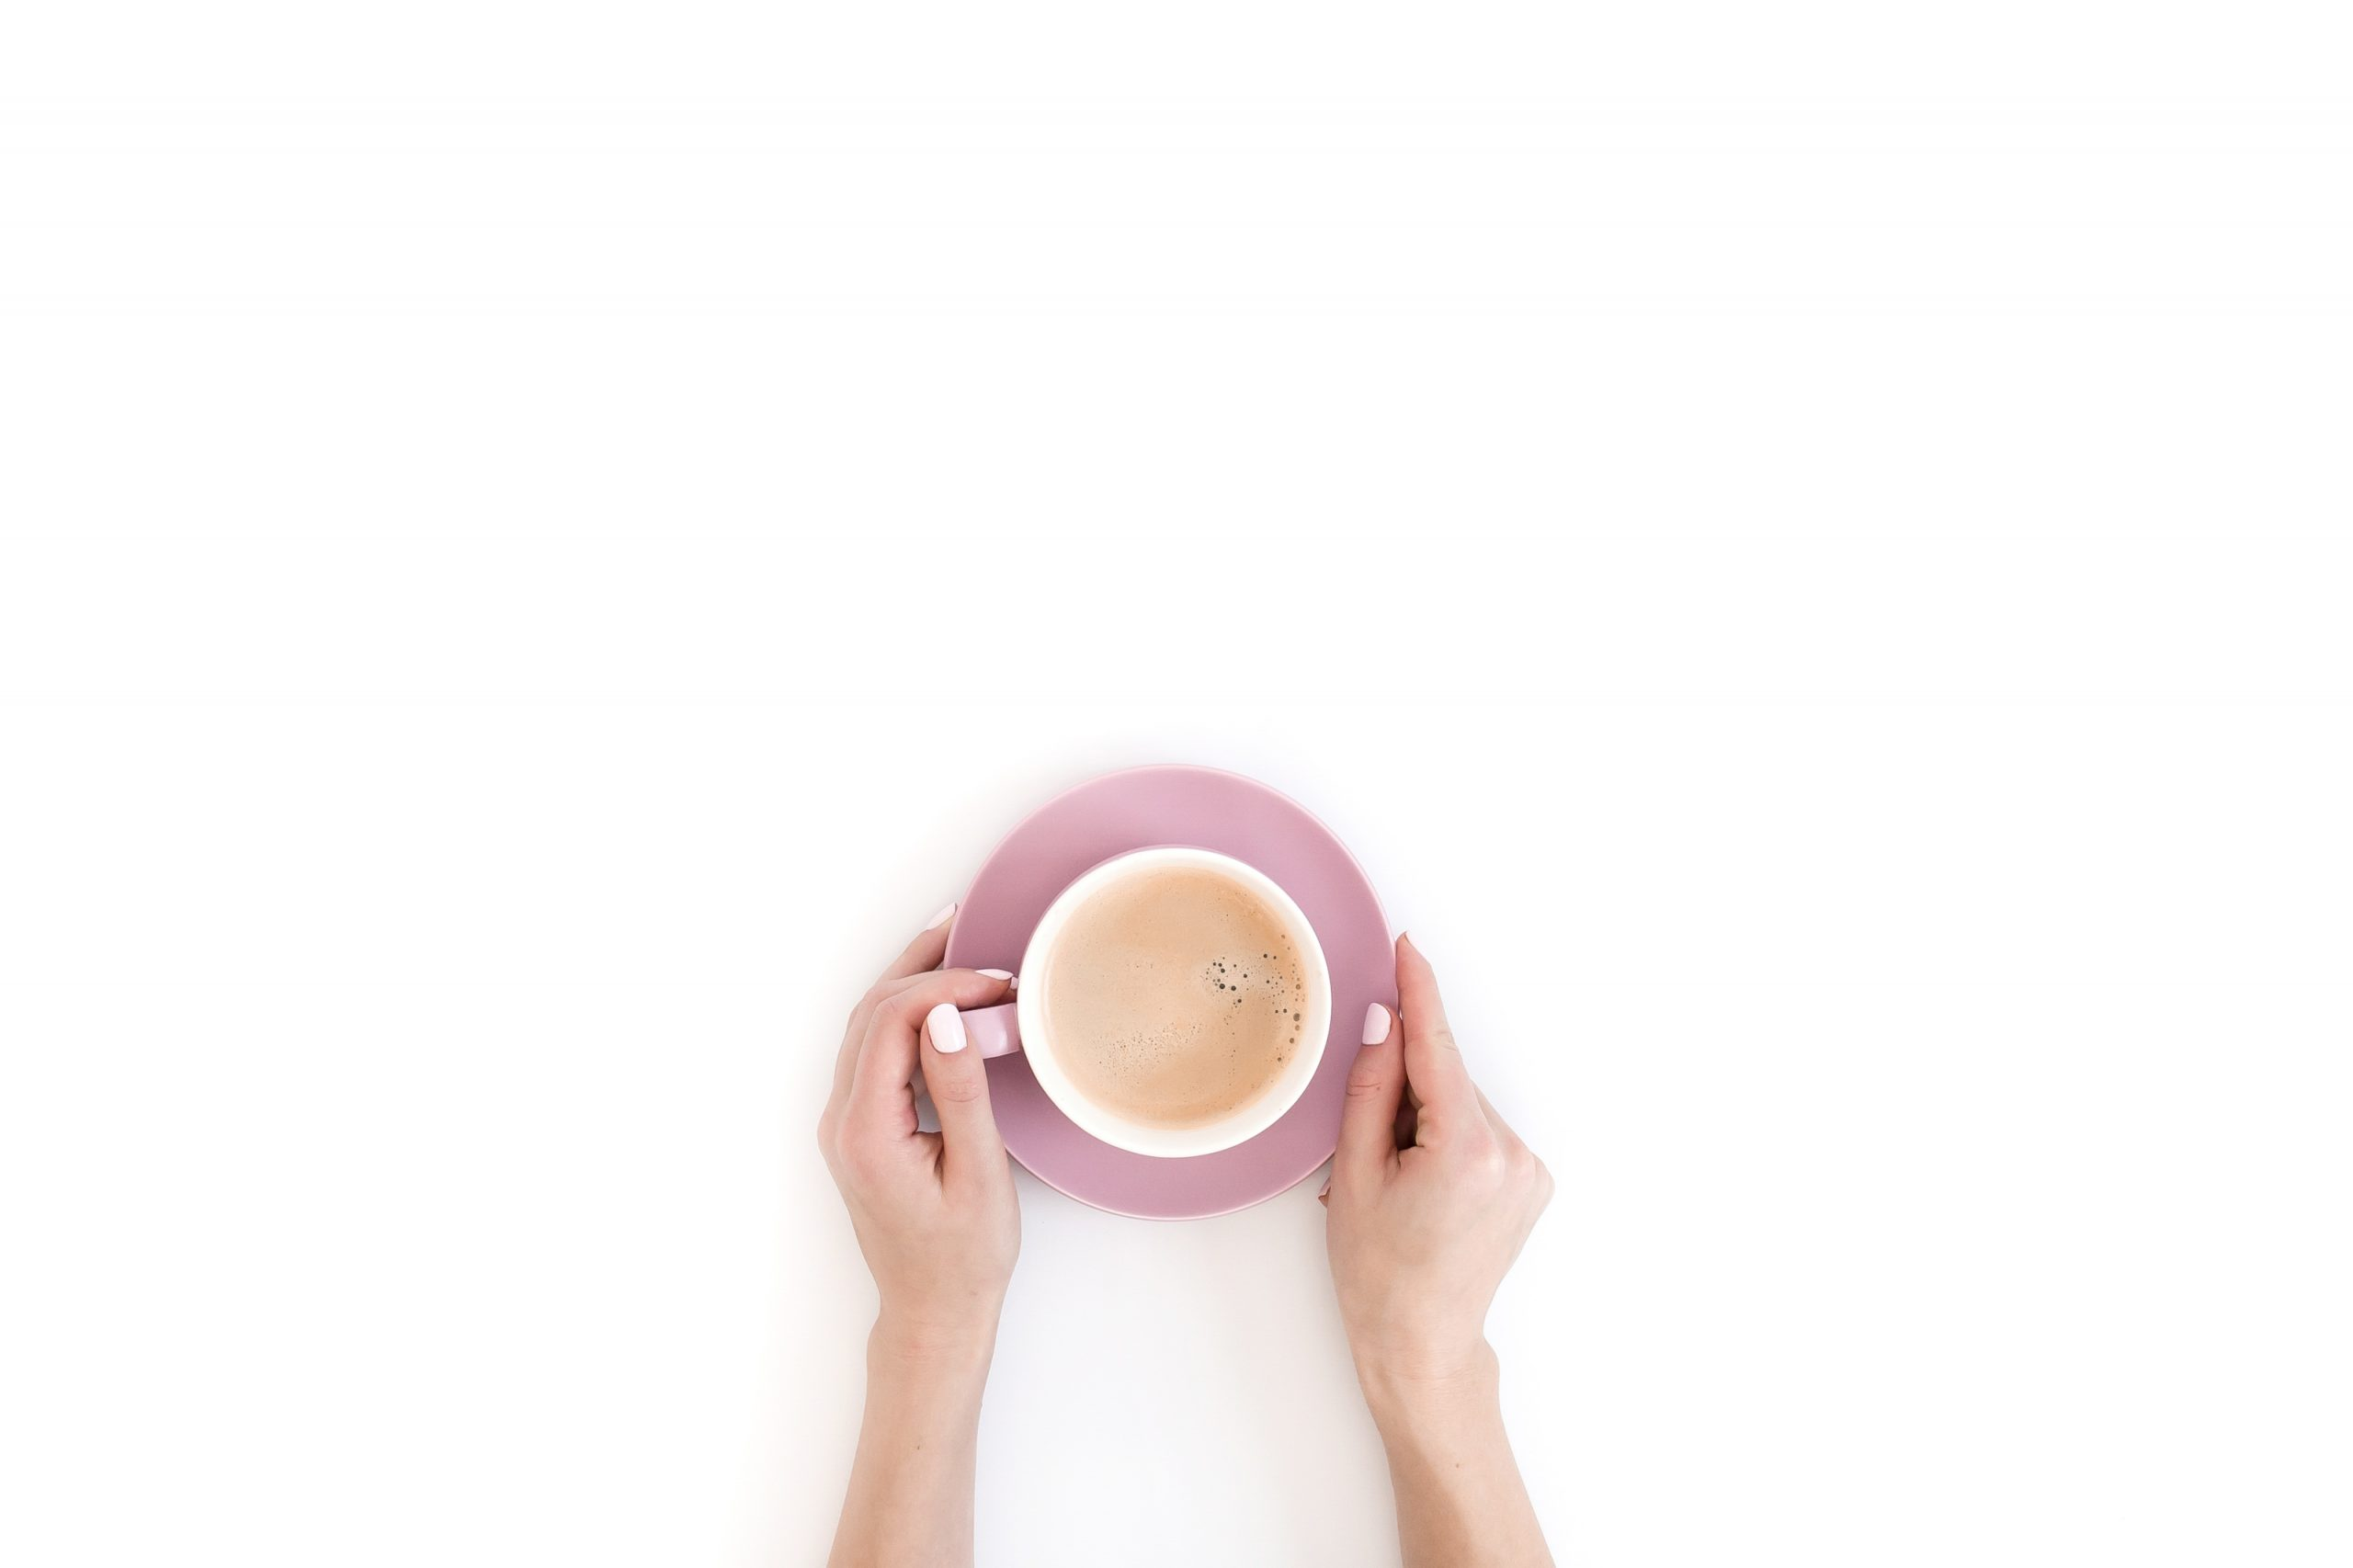 woman with pink nail polish holds a cup of coffee for session faqs